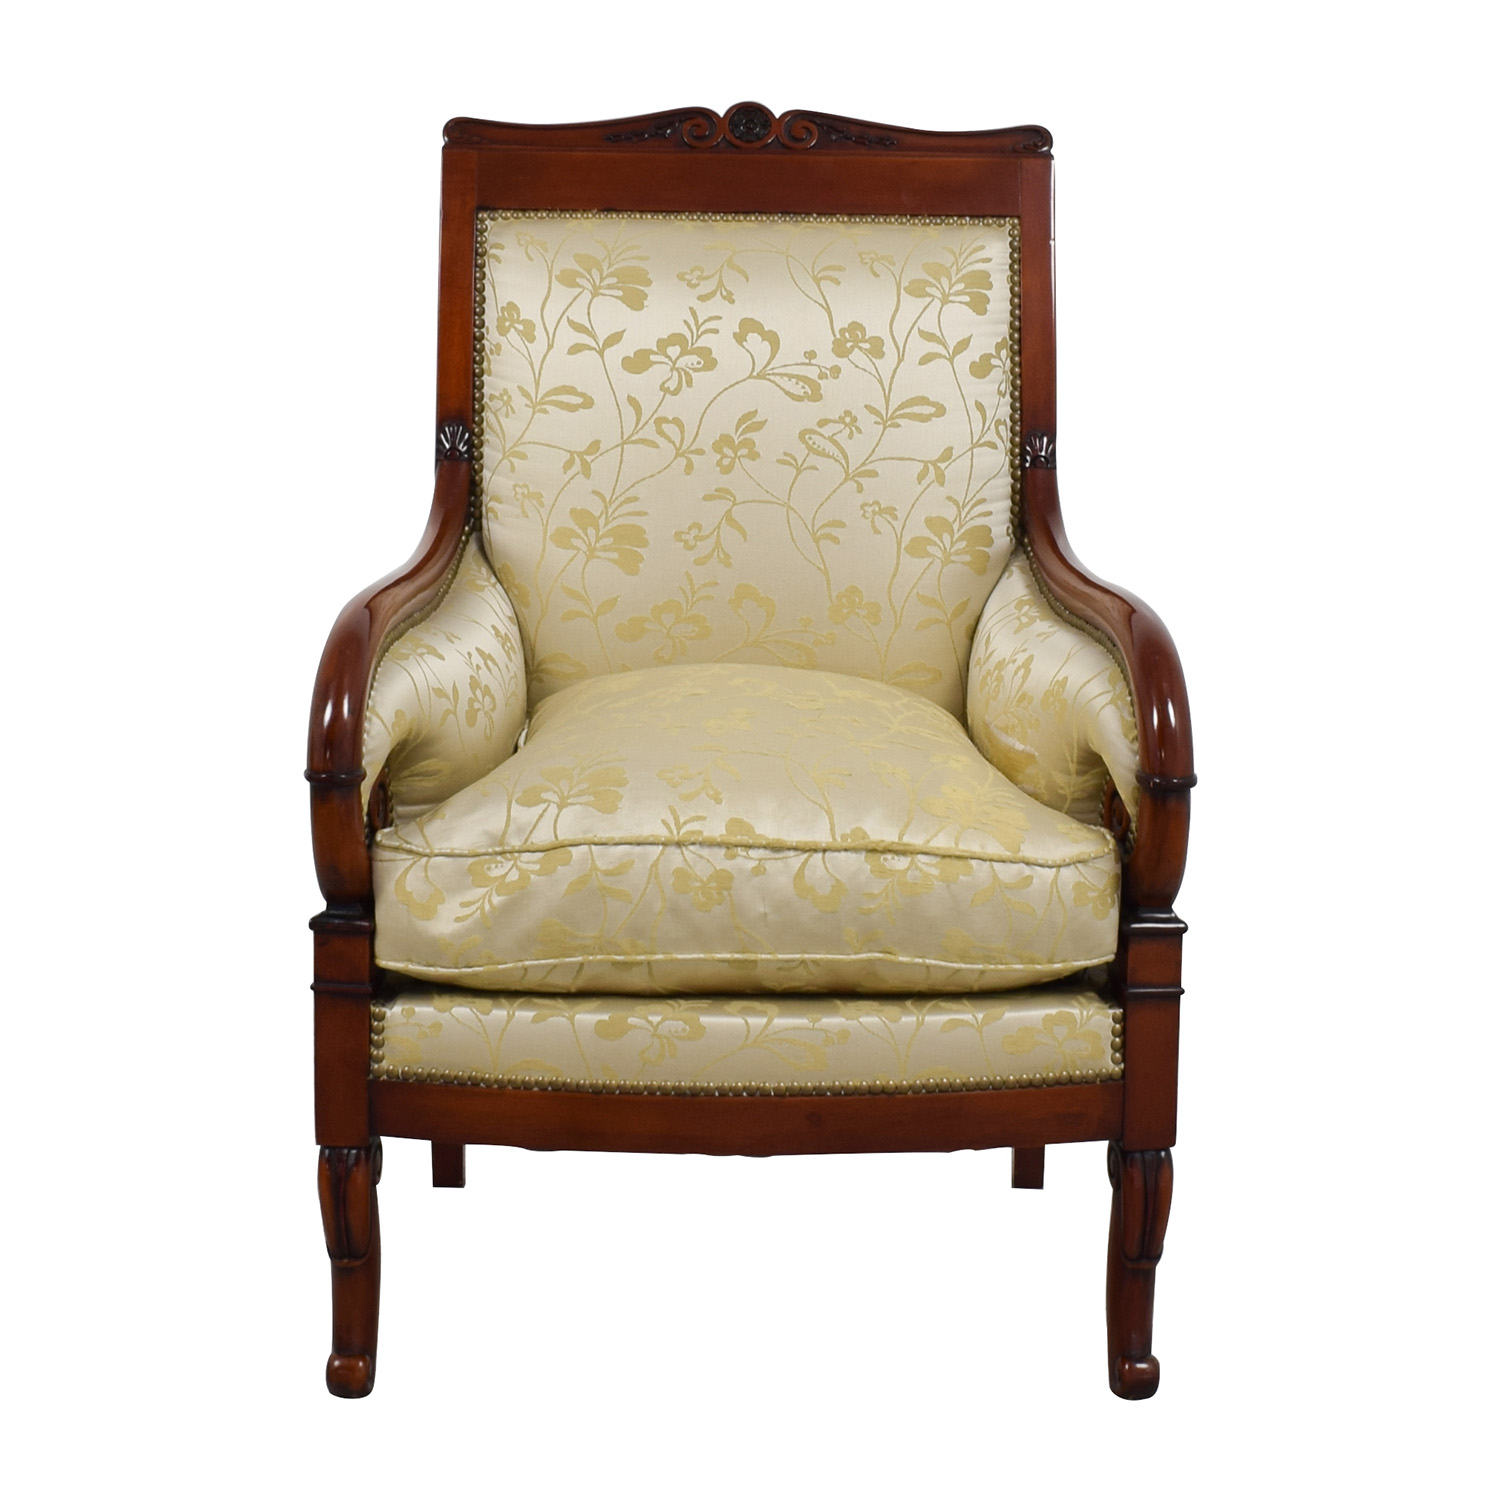 Damask Chair 90 Off Silk Damask Gold Upholstered Chair Chairs